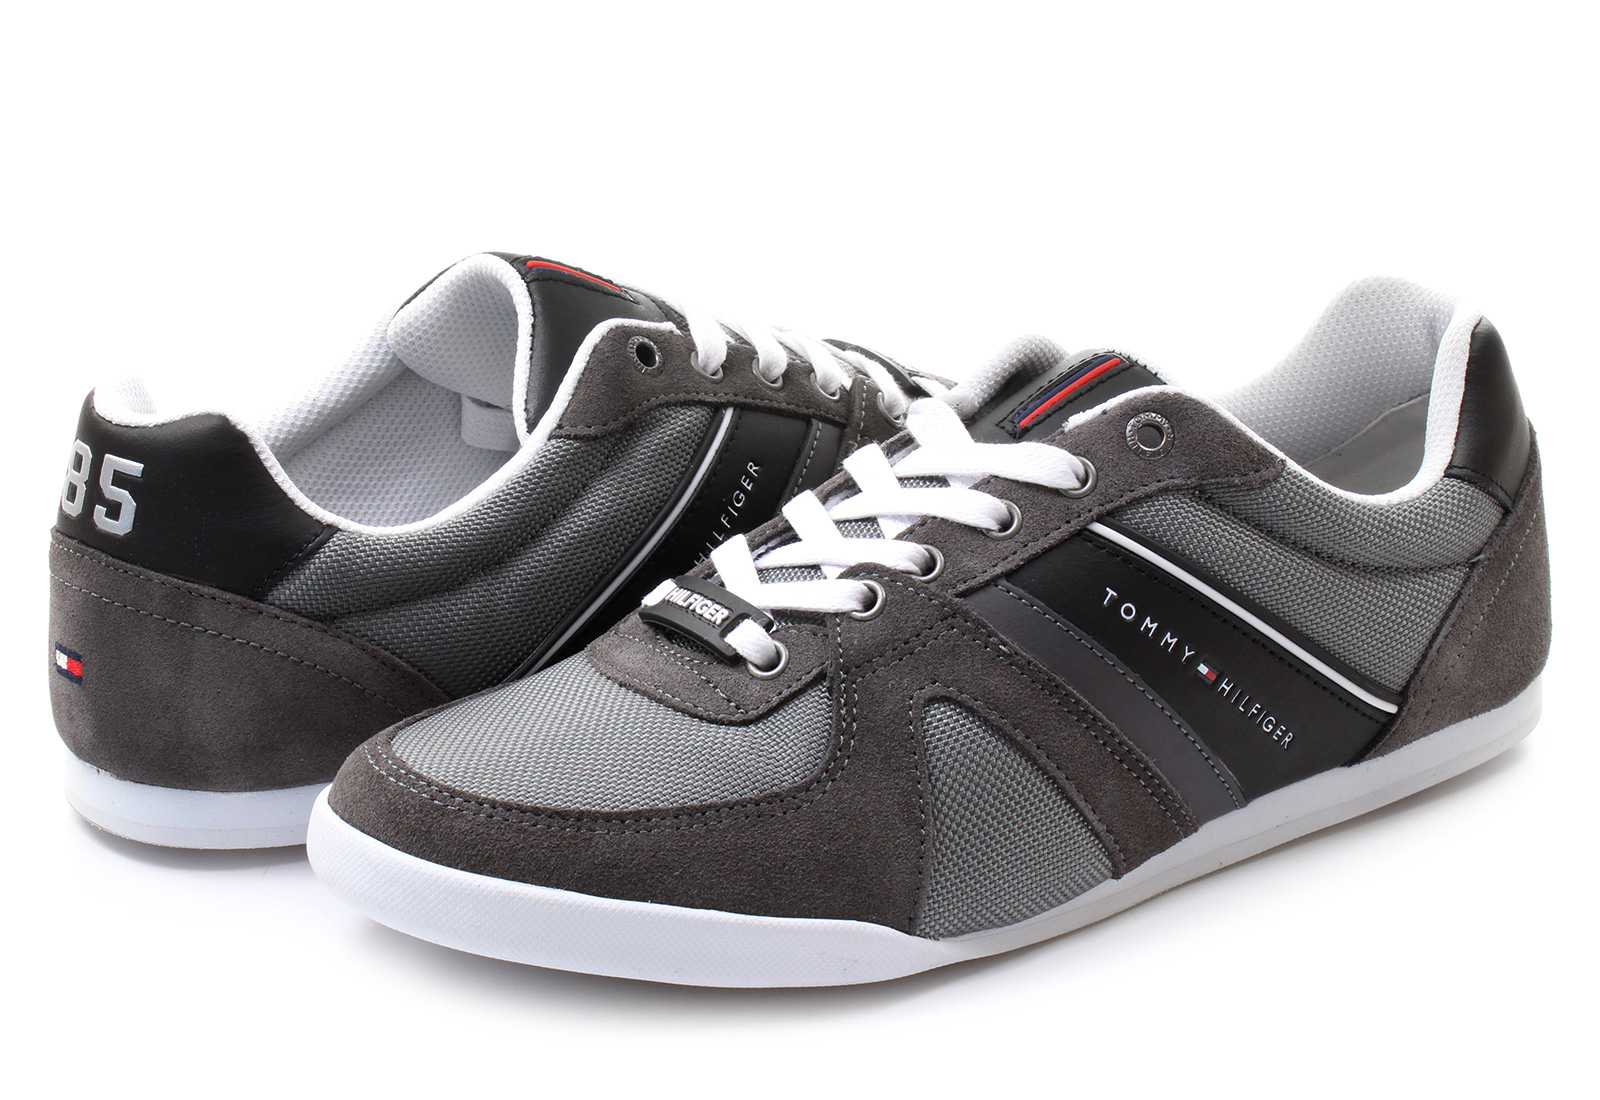 tommy hilfiger shoes riley 2d 15s 9002 039 online shop for sneakers shoes and boots. Black Bedroom Furniture Sets. Home Design Ideas